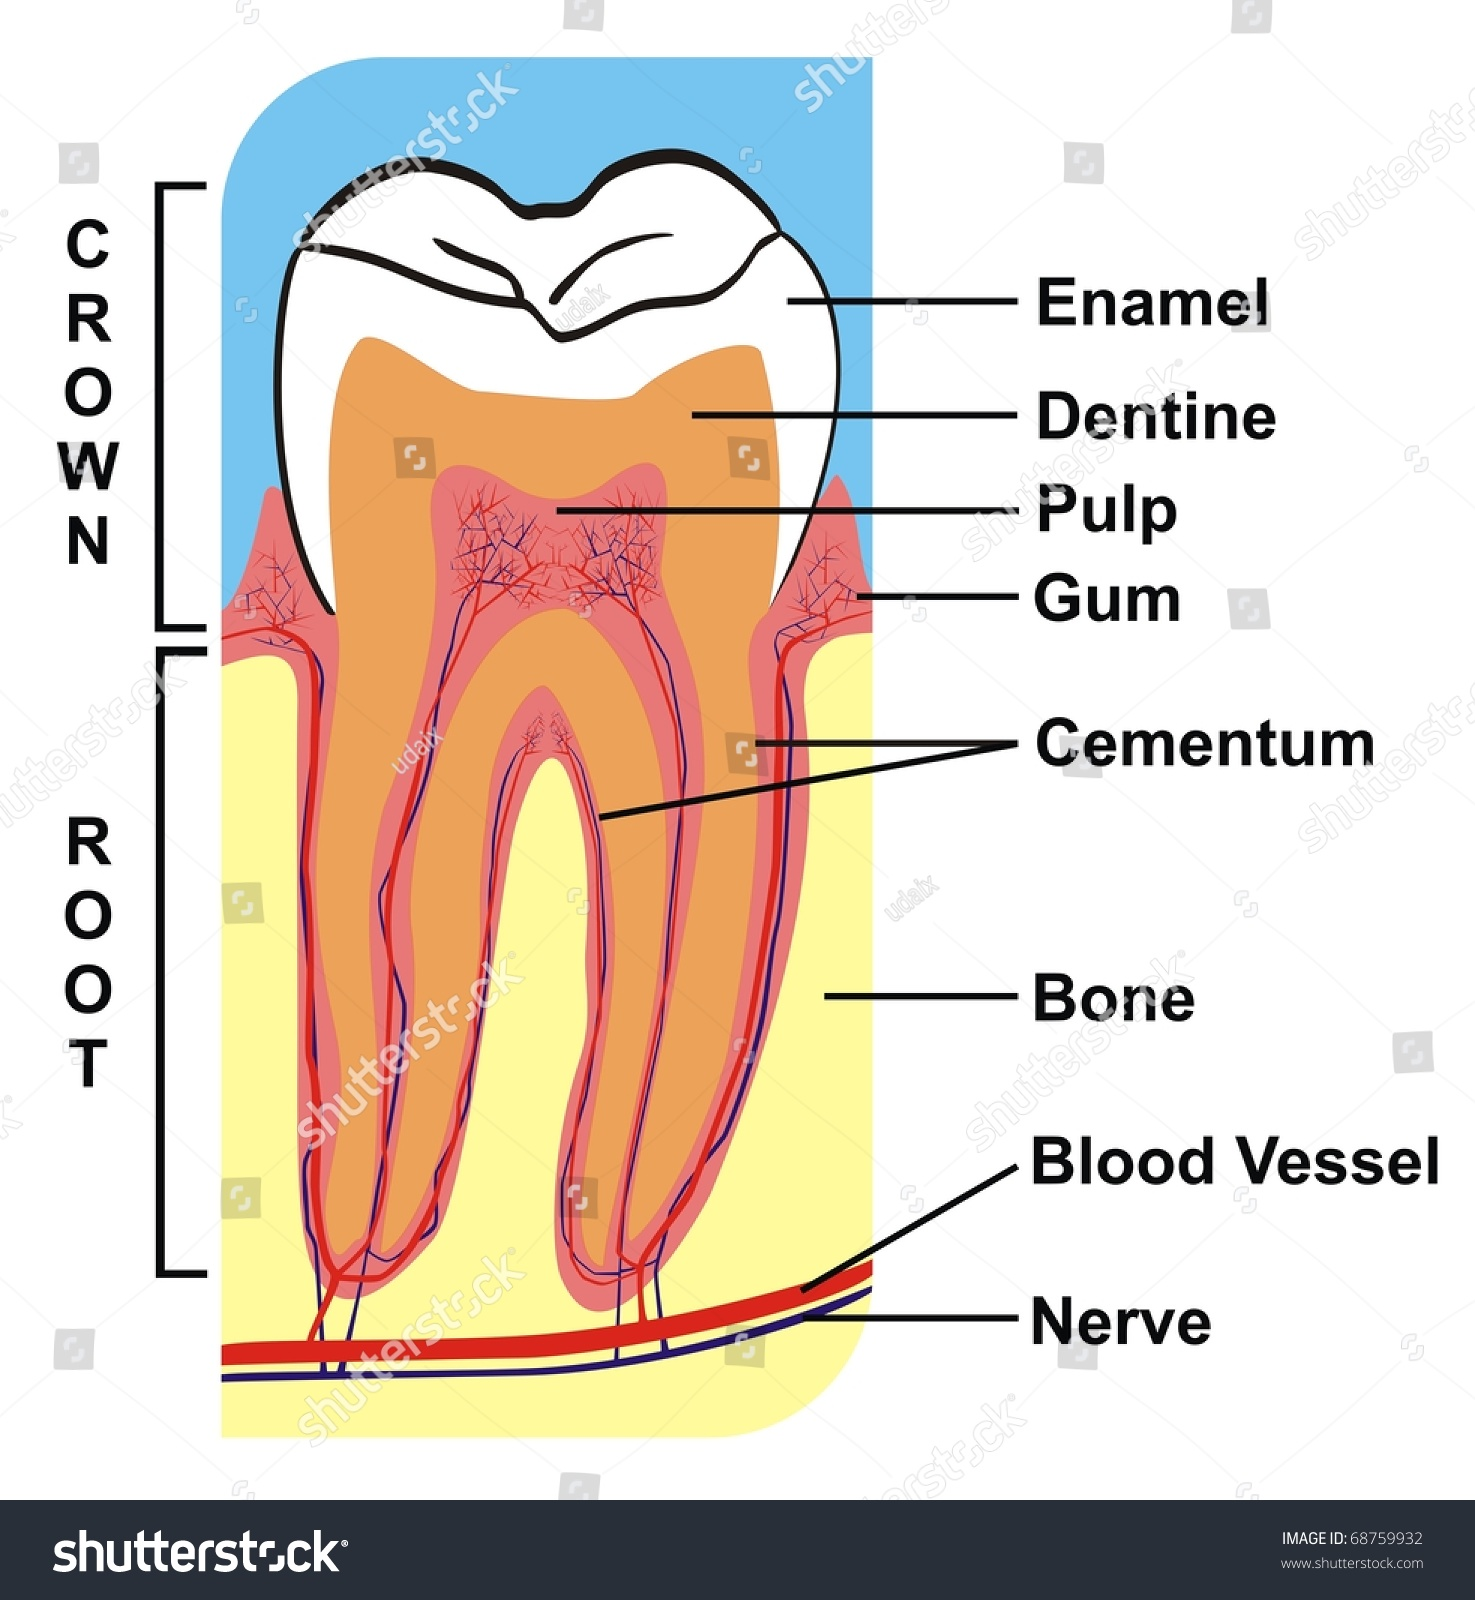 hight resolution of cross section of tooth crown root including the parts enamel dentine pulp gum cementum bone blood vessel nerve for education purpose